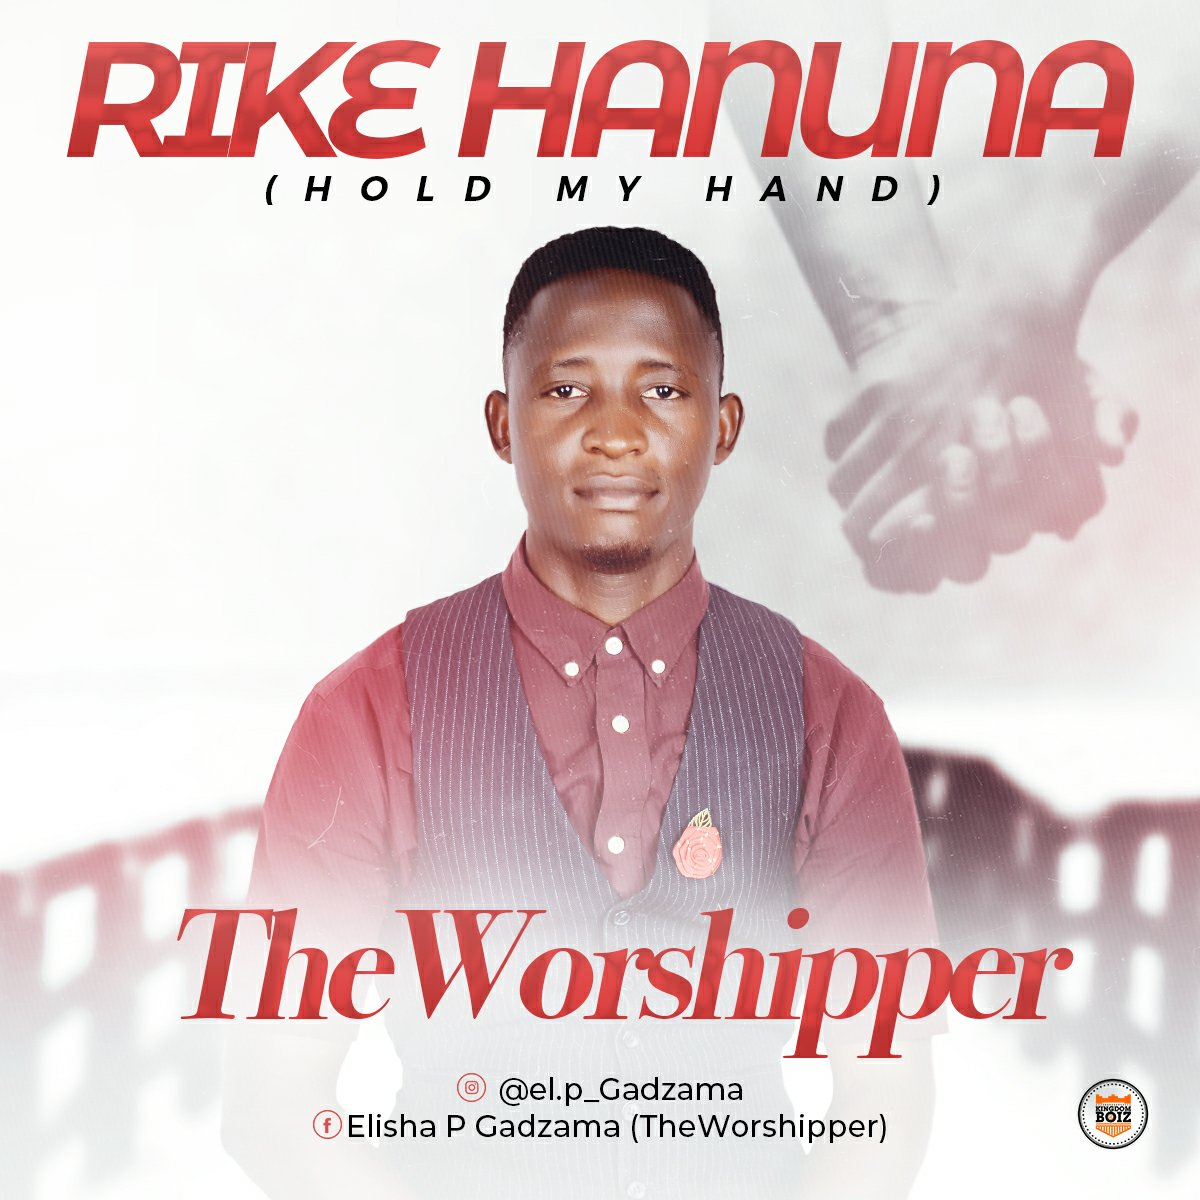 TheWorshipper - Rike Hanuna (Hold My Hand)